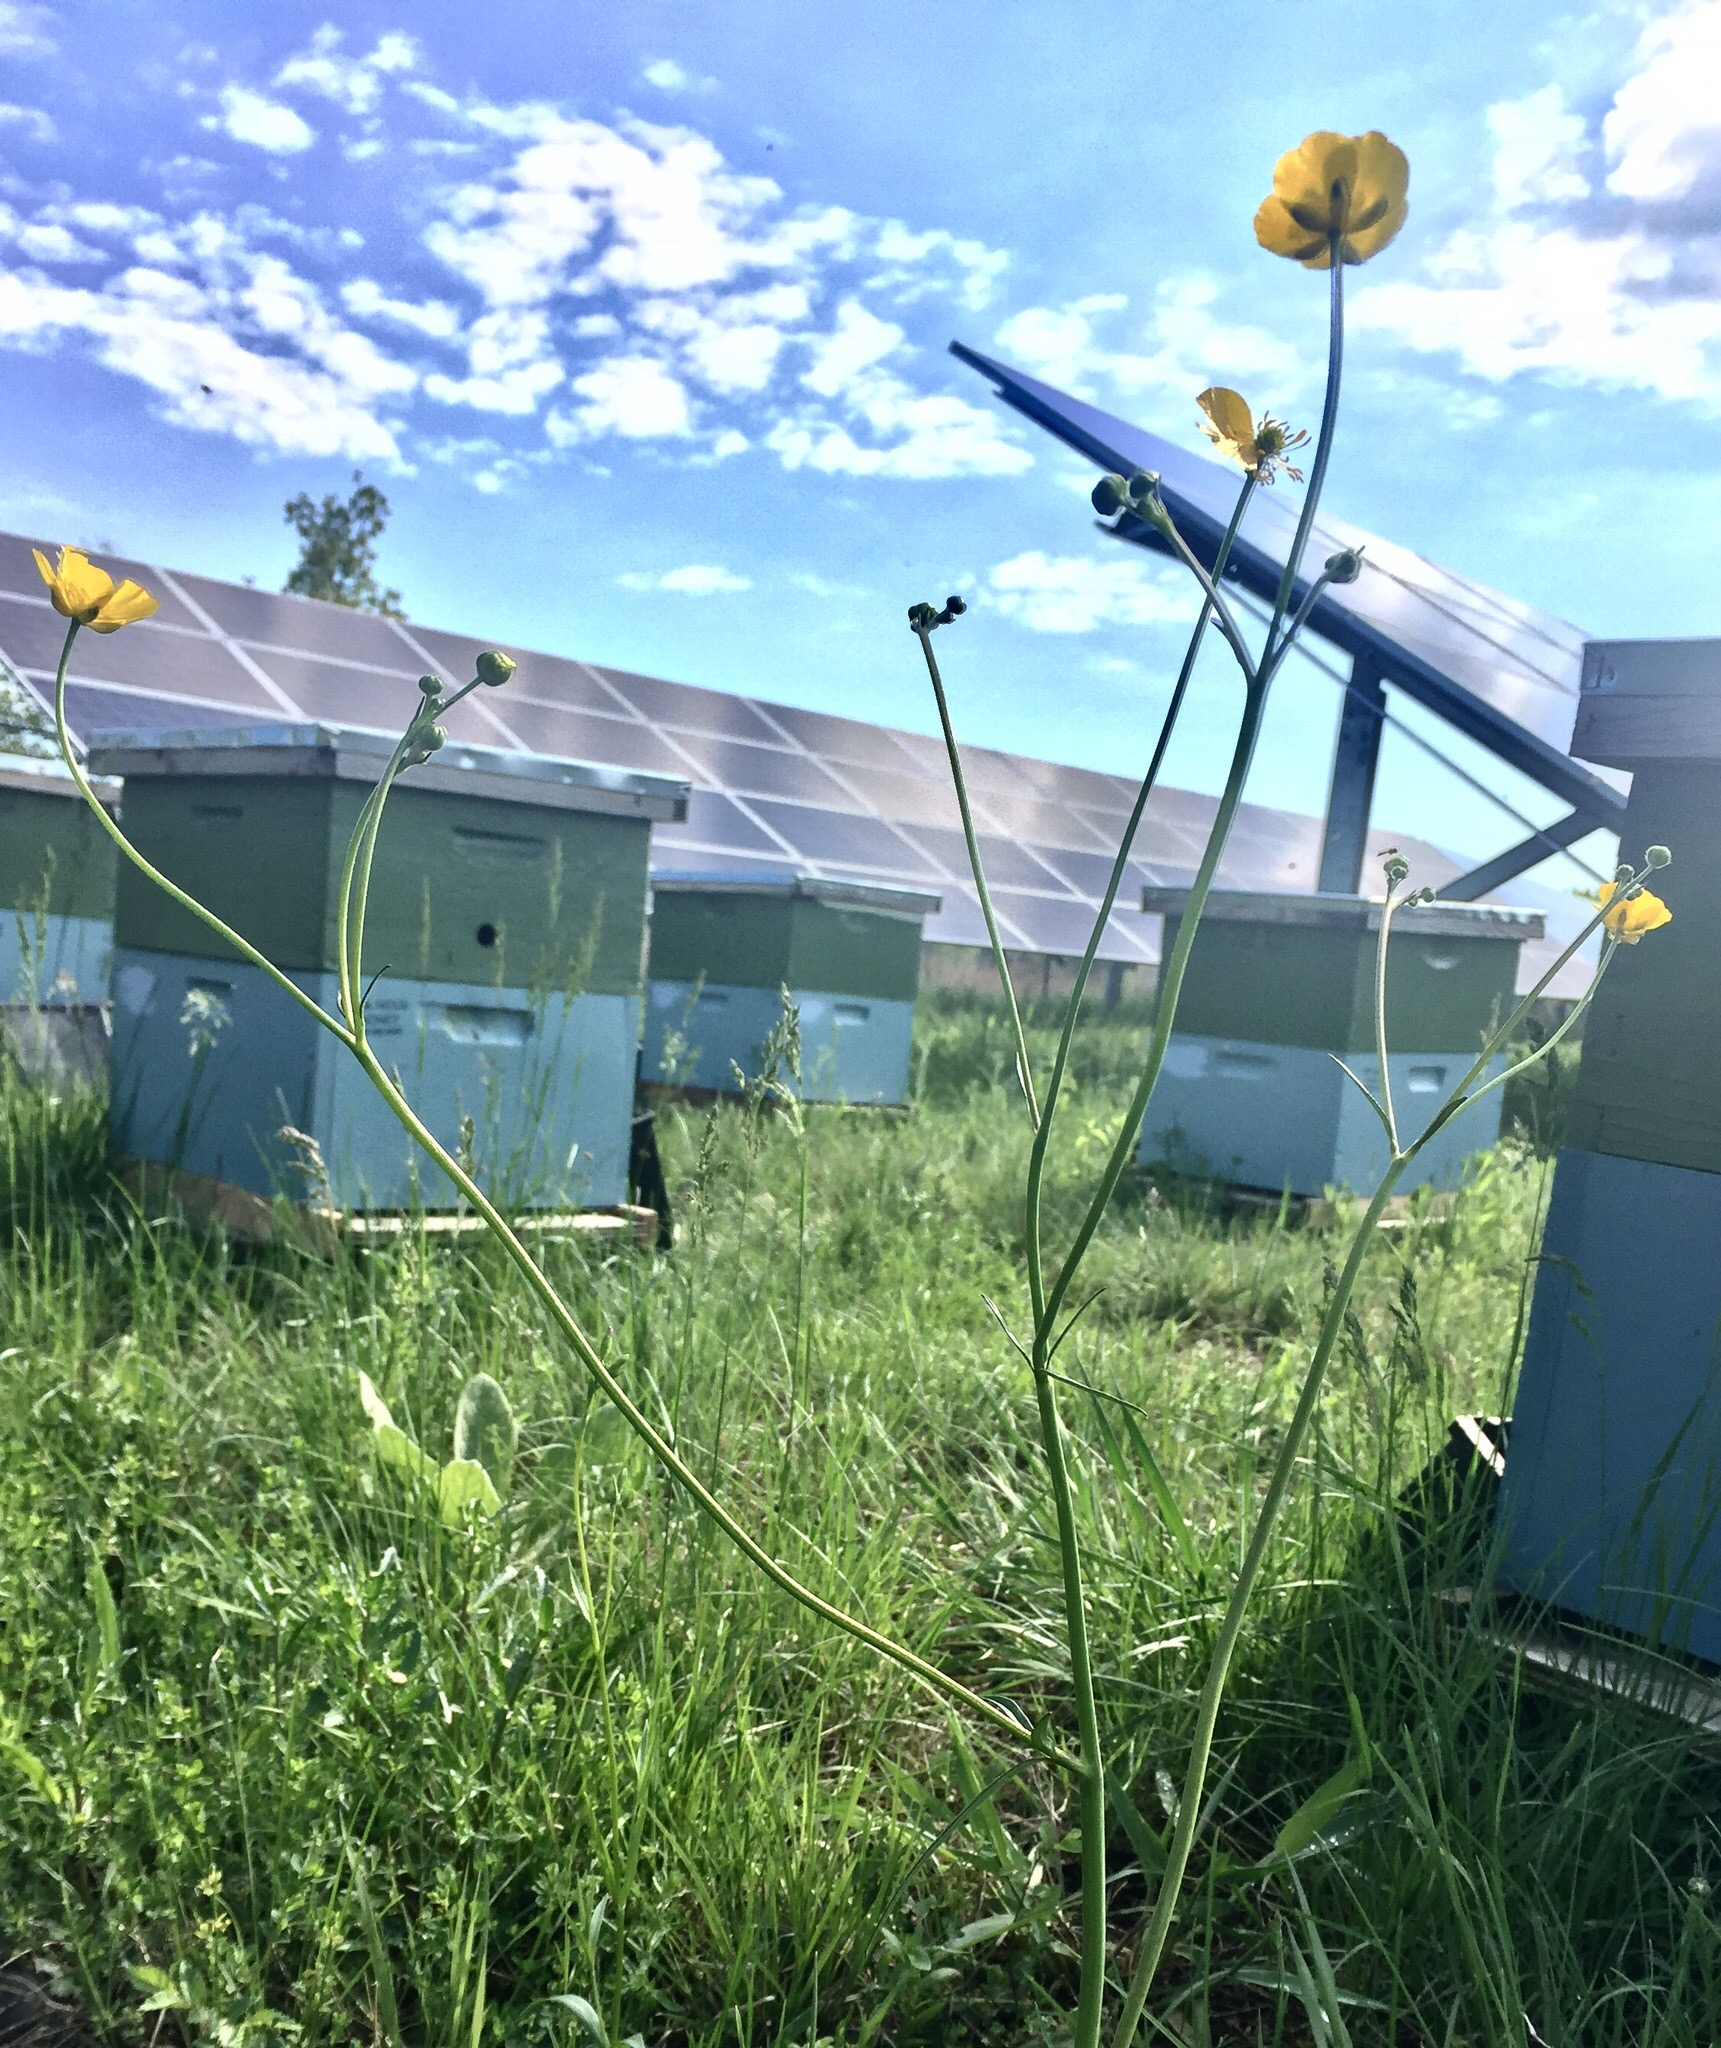 CleanChoice Energy Partnership Helps Support Healthy Habitat for Bees on Solar Farms